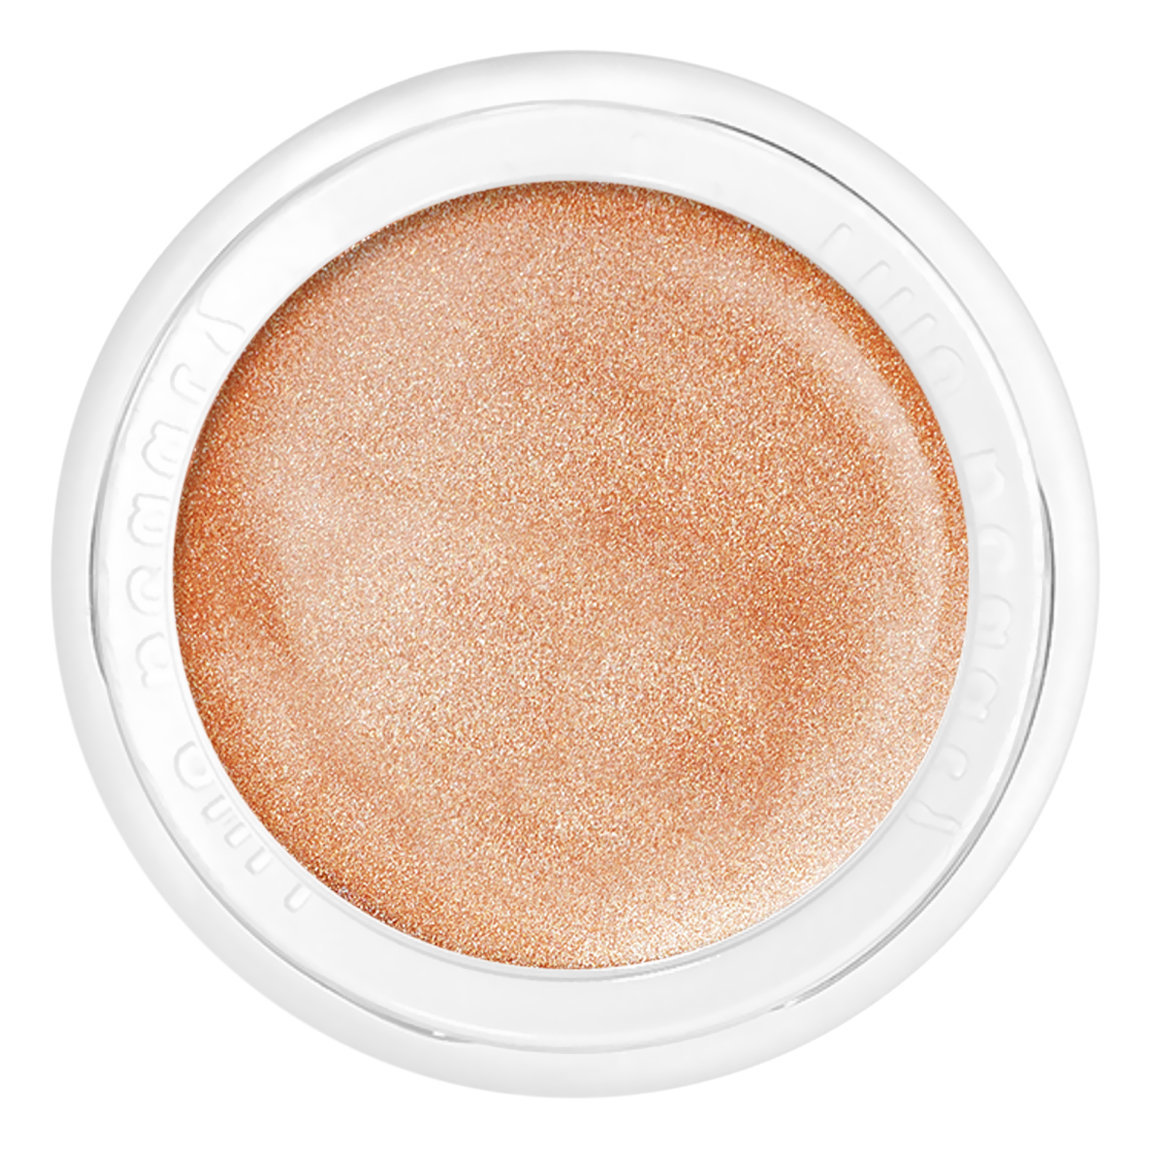 rms beauty Master Mixer alternative view 1 - product swatch.